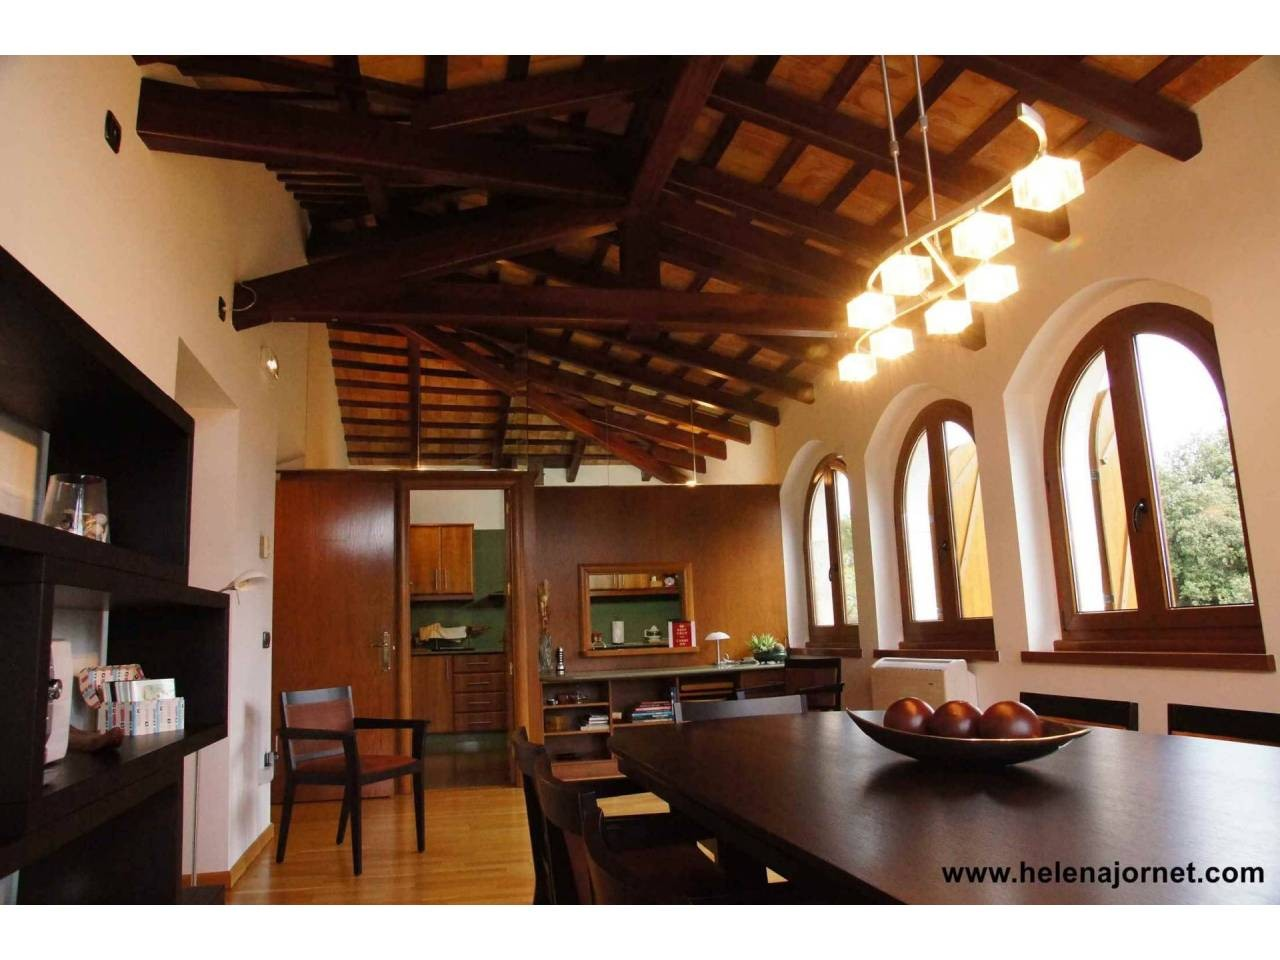 Spectacular farmhouse reformed with covered swimming pool and 37 ha of area - 343